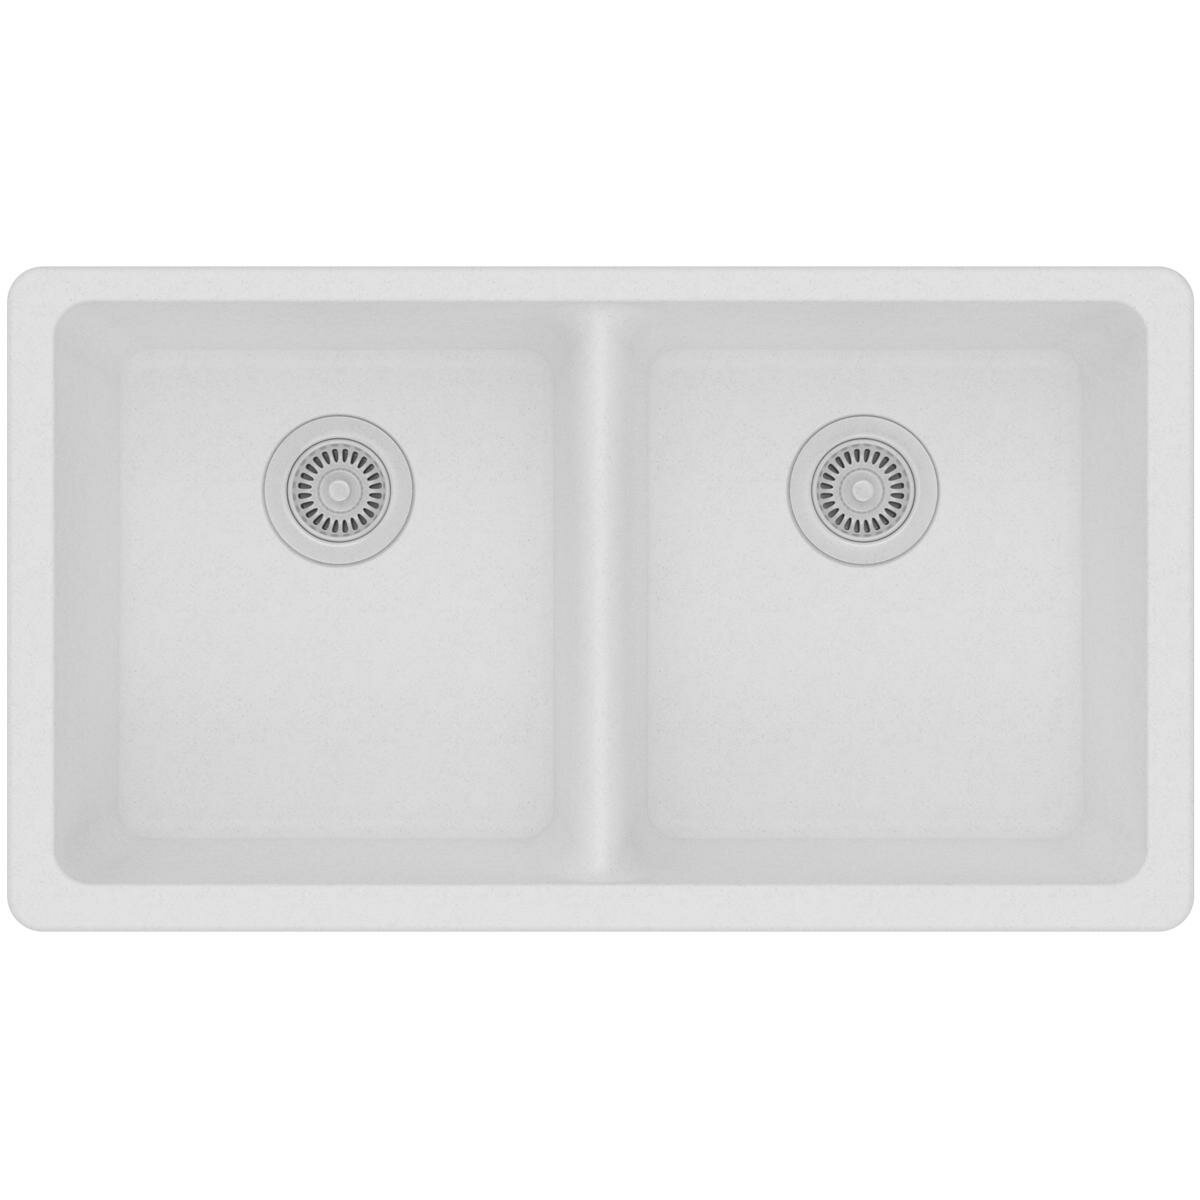 Classic 33 X 19 Double Basin Undermount Kitchen Sink